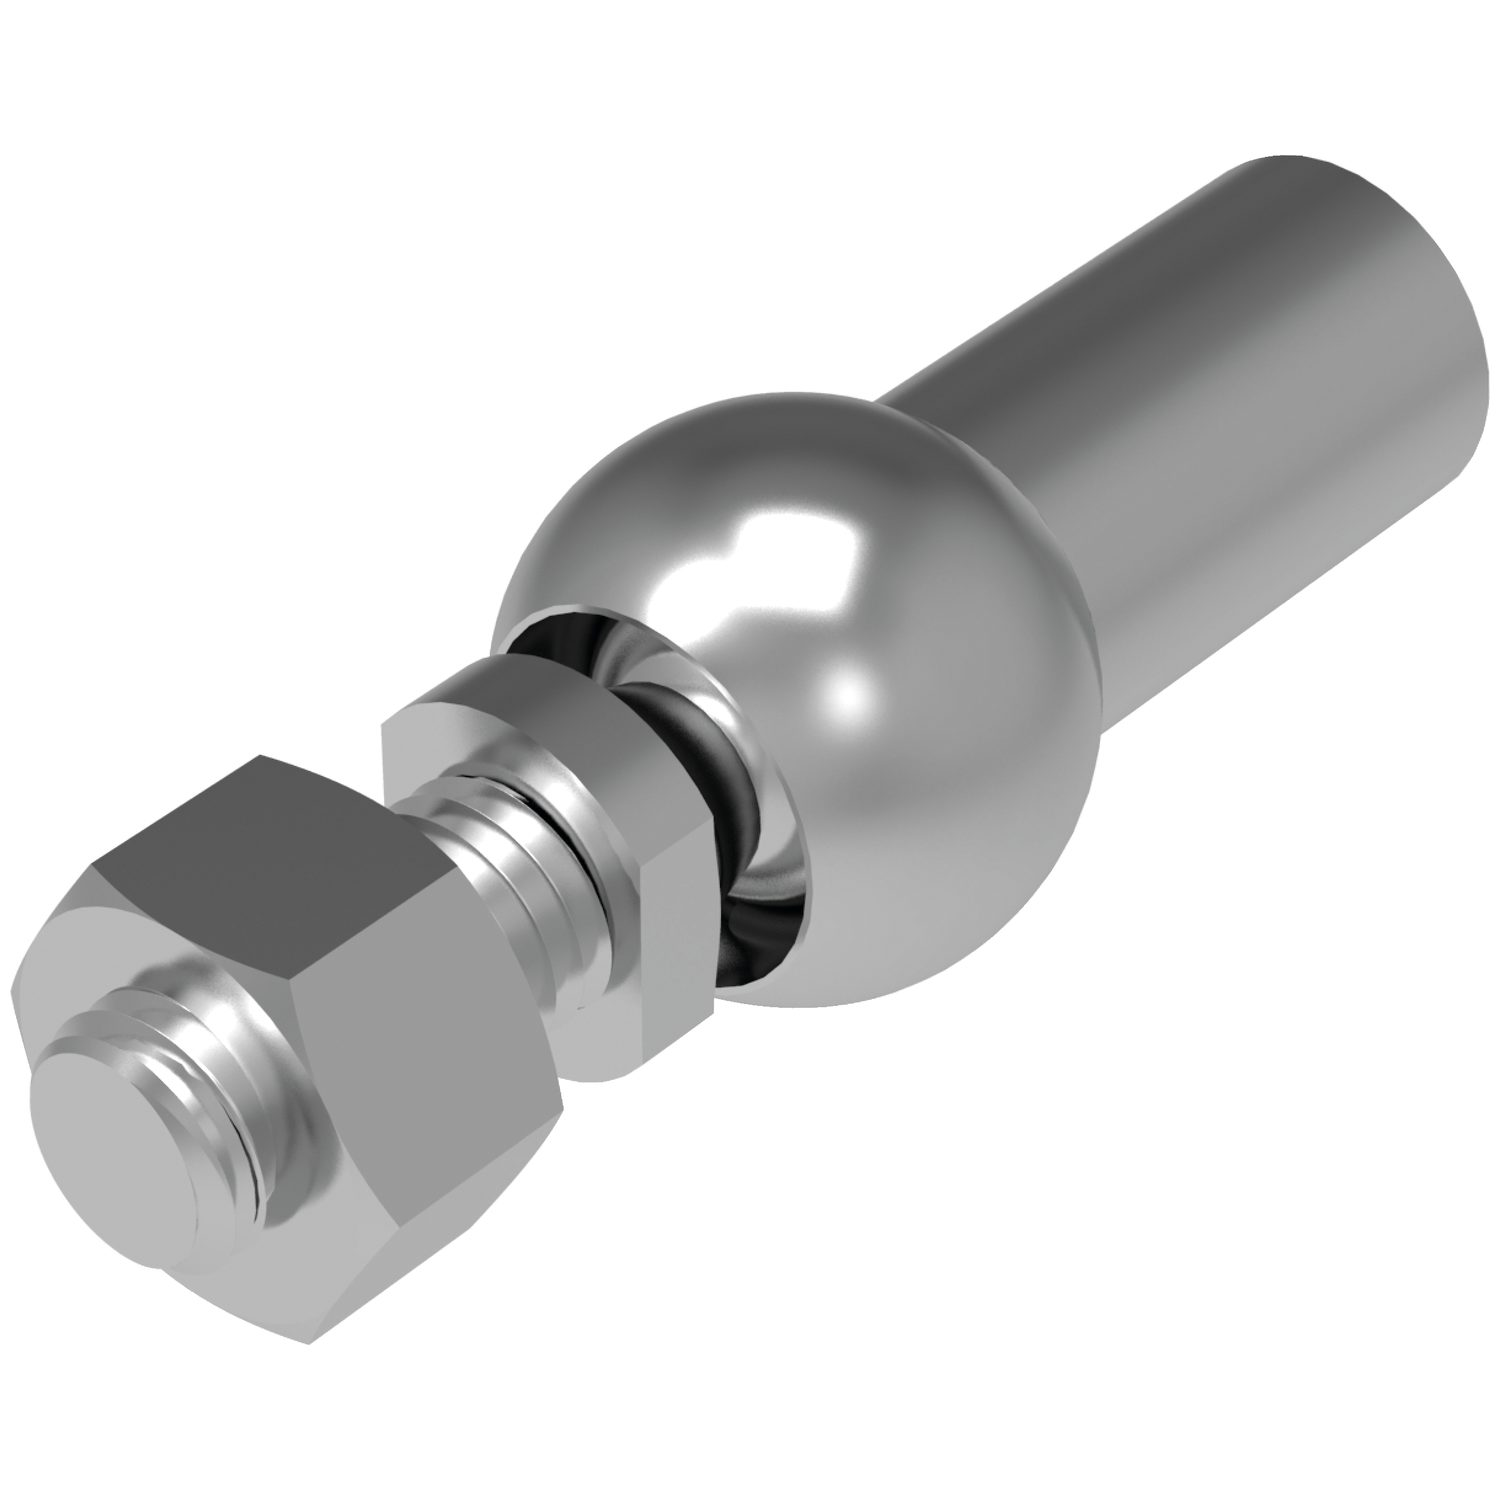 R3507 - Stainless Axial Ball and Socket Joints